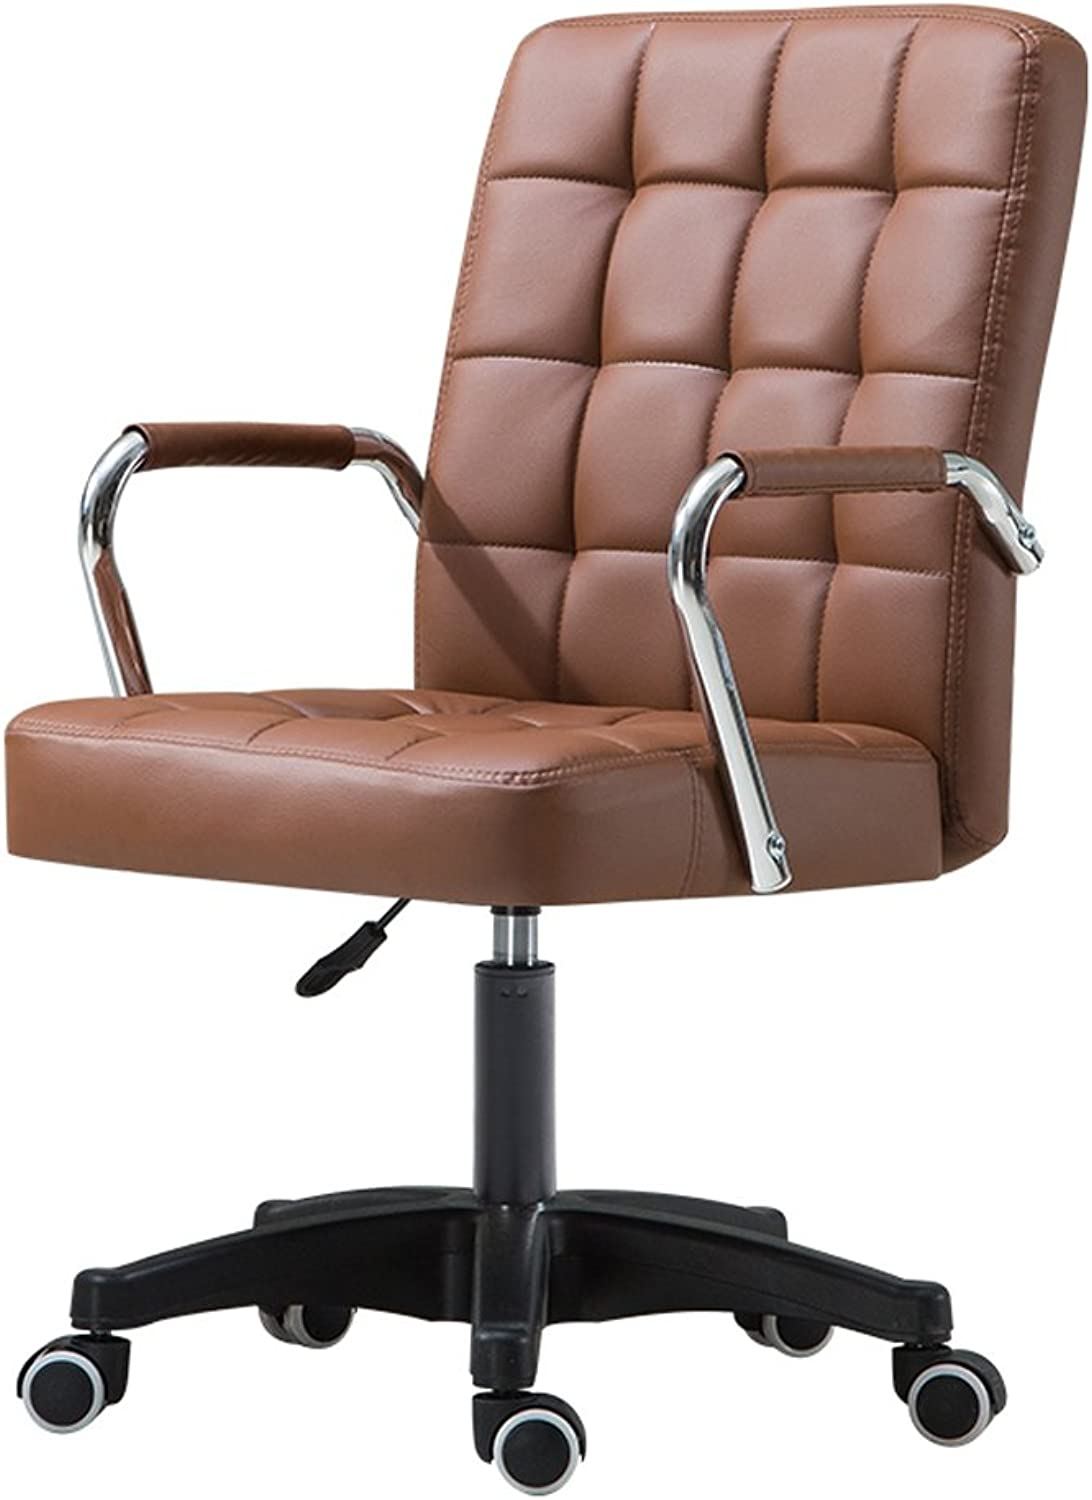 SUNHAI Office Swivel Chair Simple Computer Chair Home Conference Chair Staff Bow Student Chair Dormitory Lift redating Chair (color   Brown, Size   A)